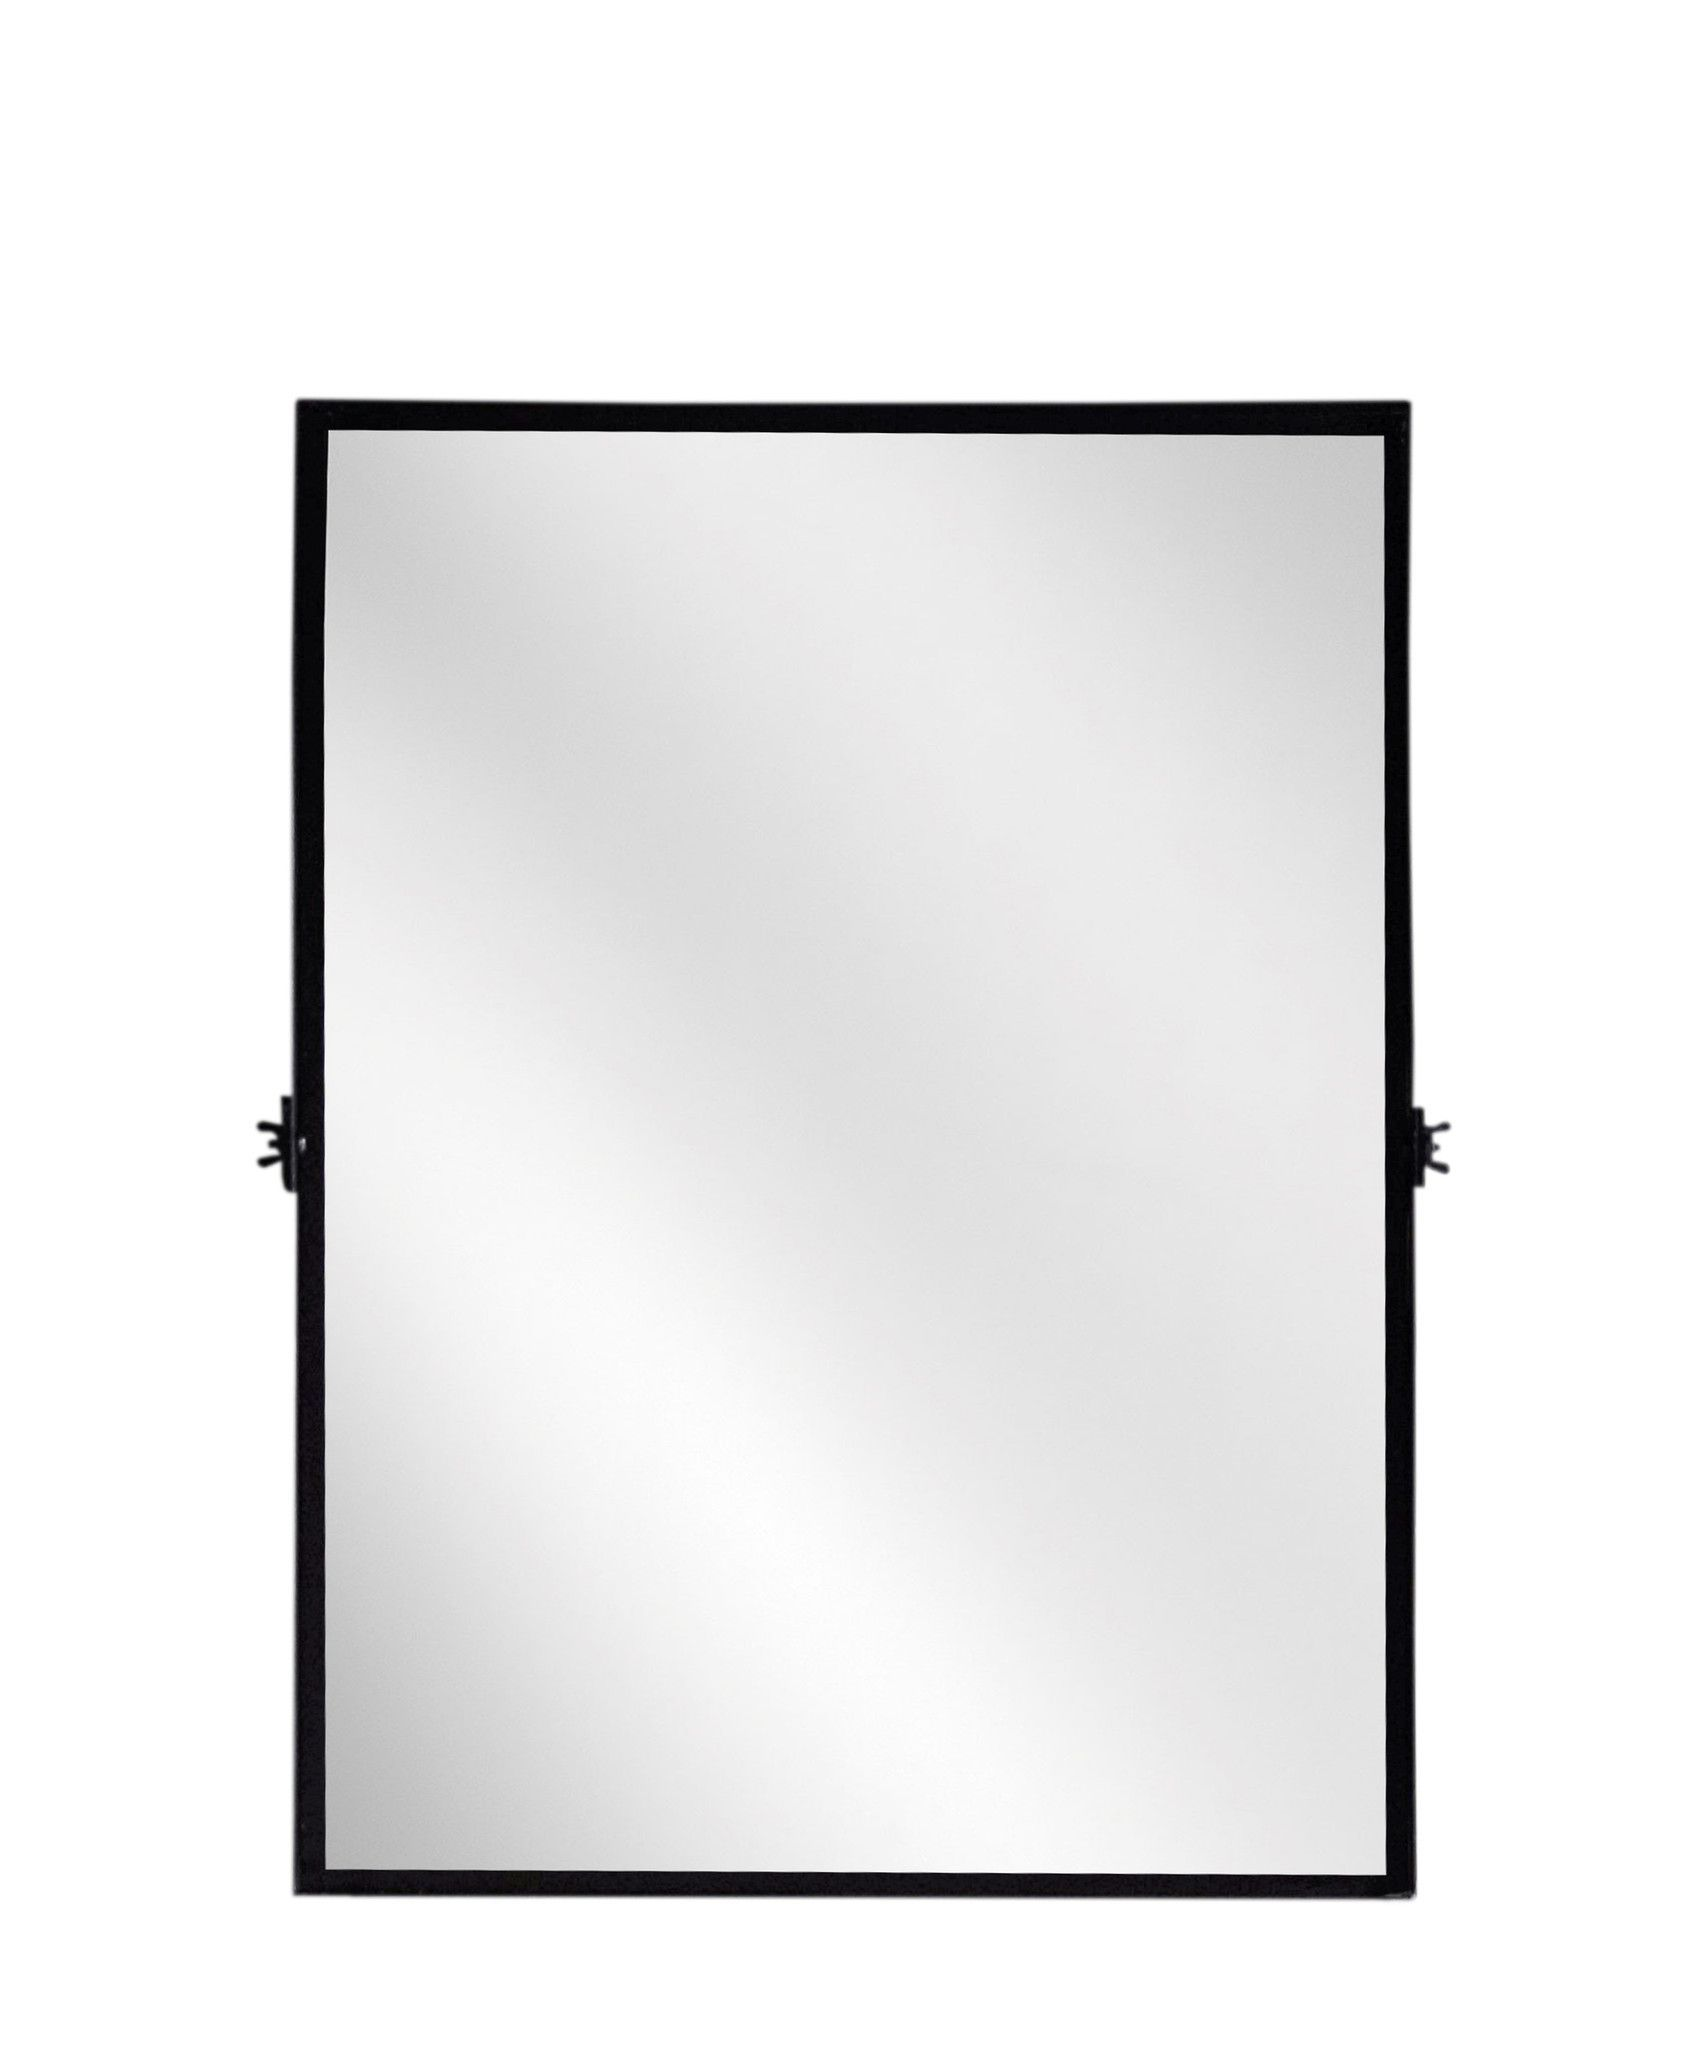 Bathroom Tilt Mirrors Rectangular Pivot Mirror Modern Black Iron Frame With A Matte